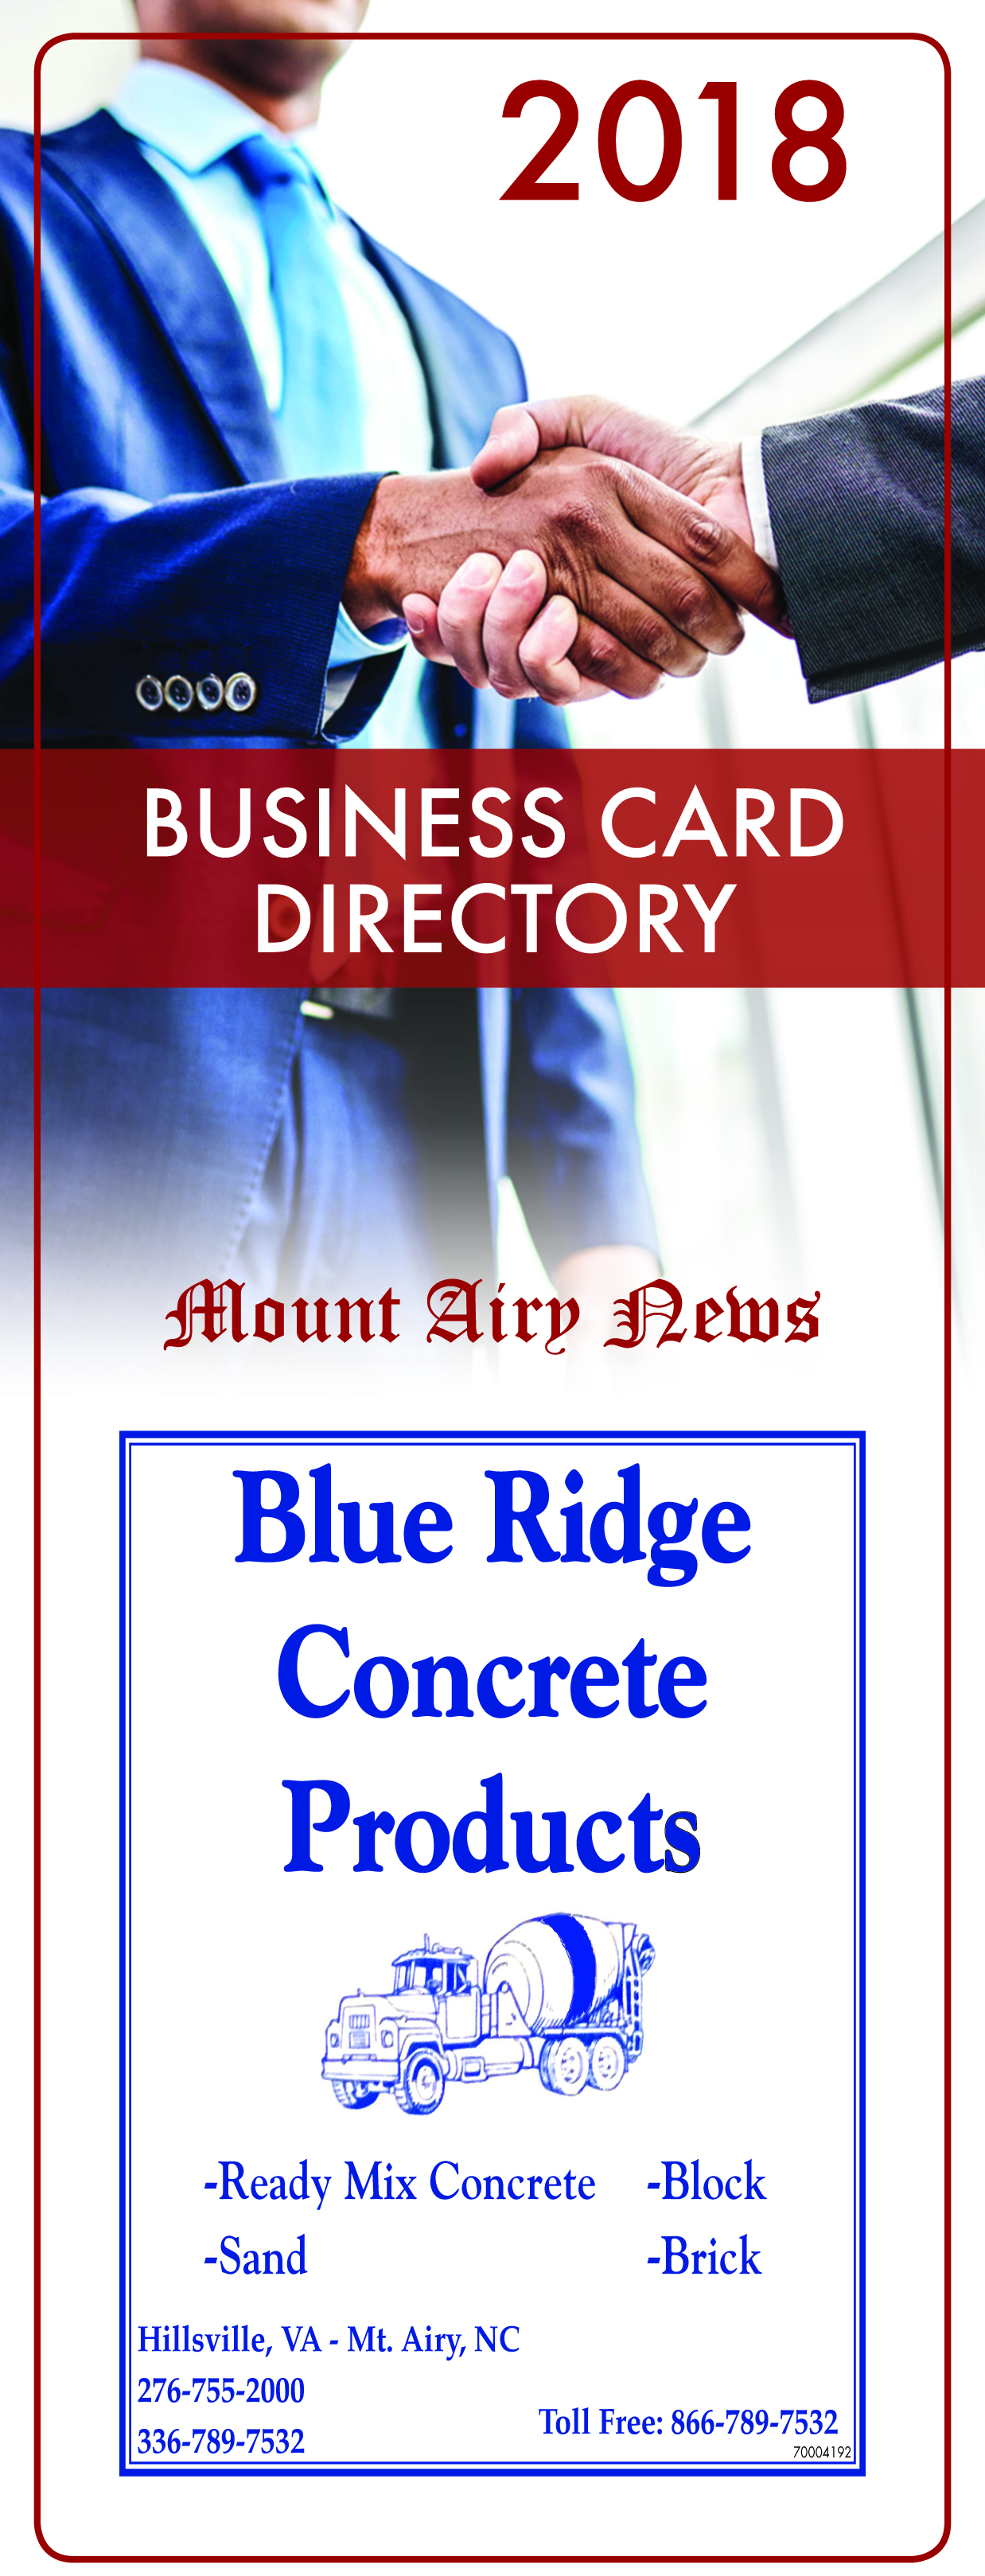 2018 mta business card directory mt airy news 2018 mta business card directory colourmoves